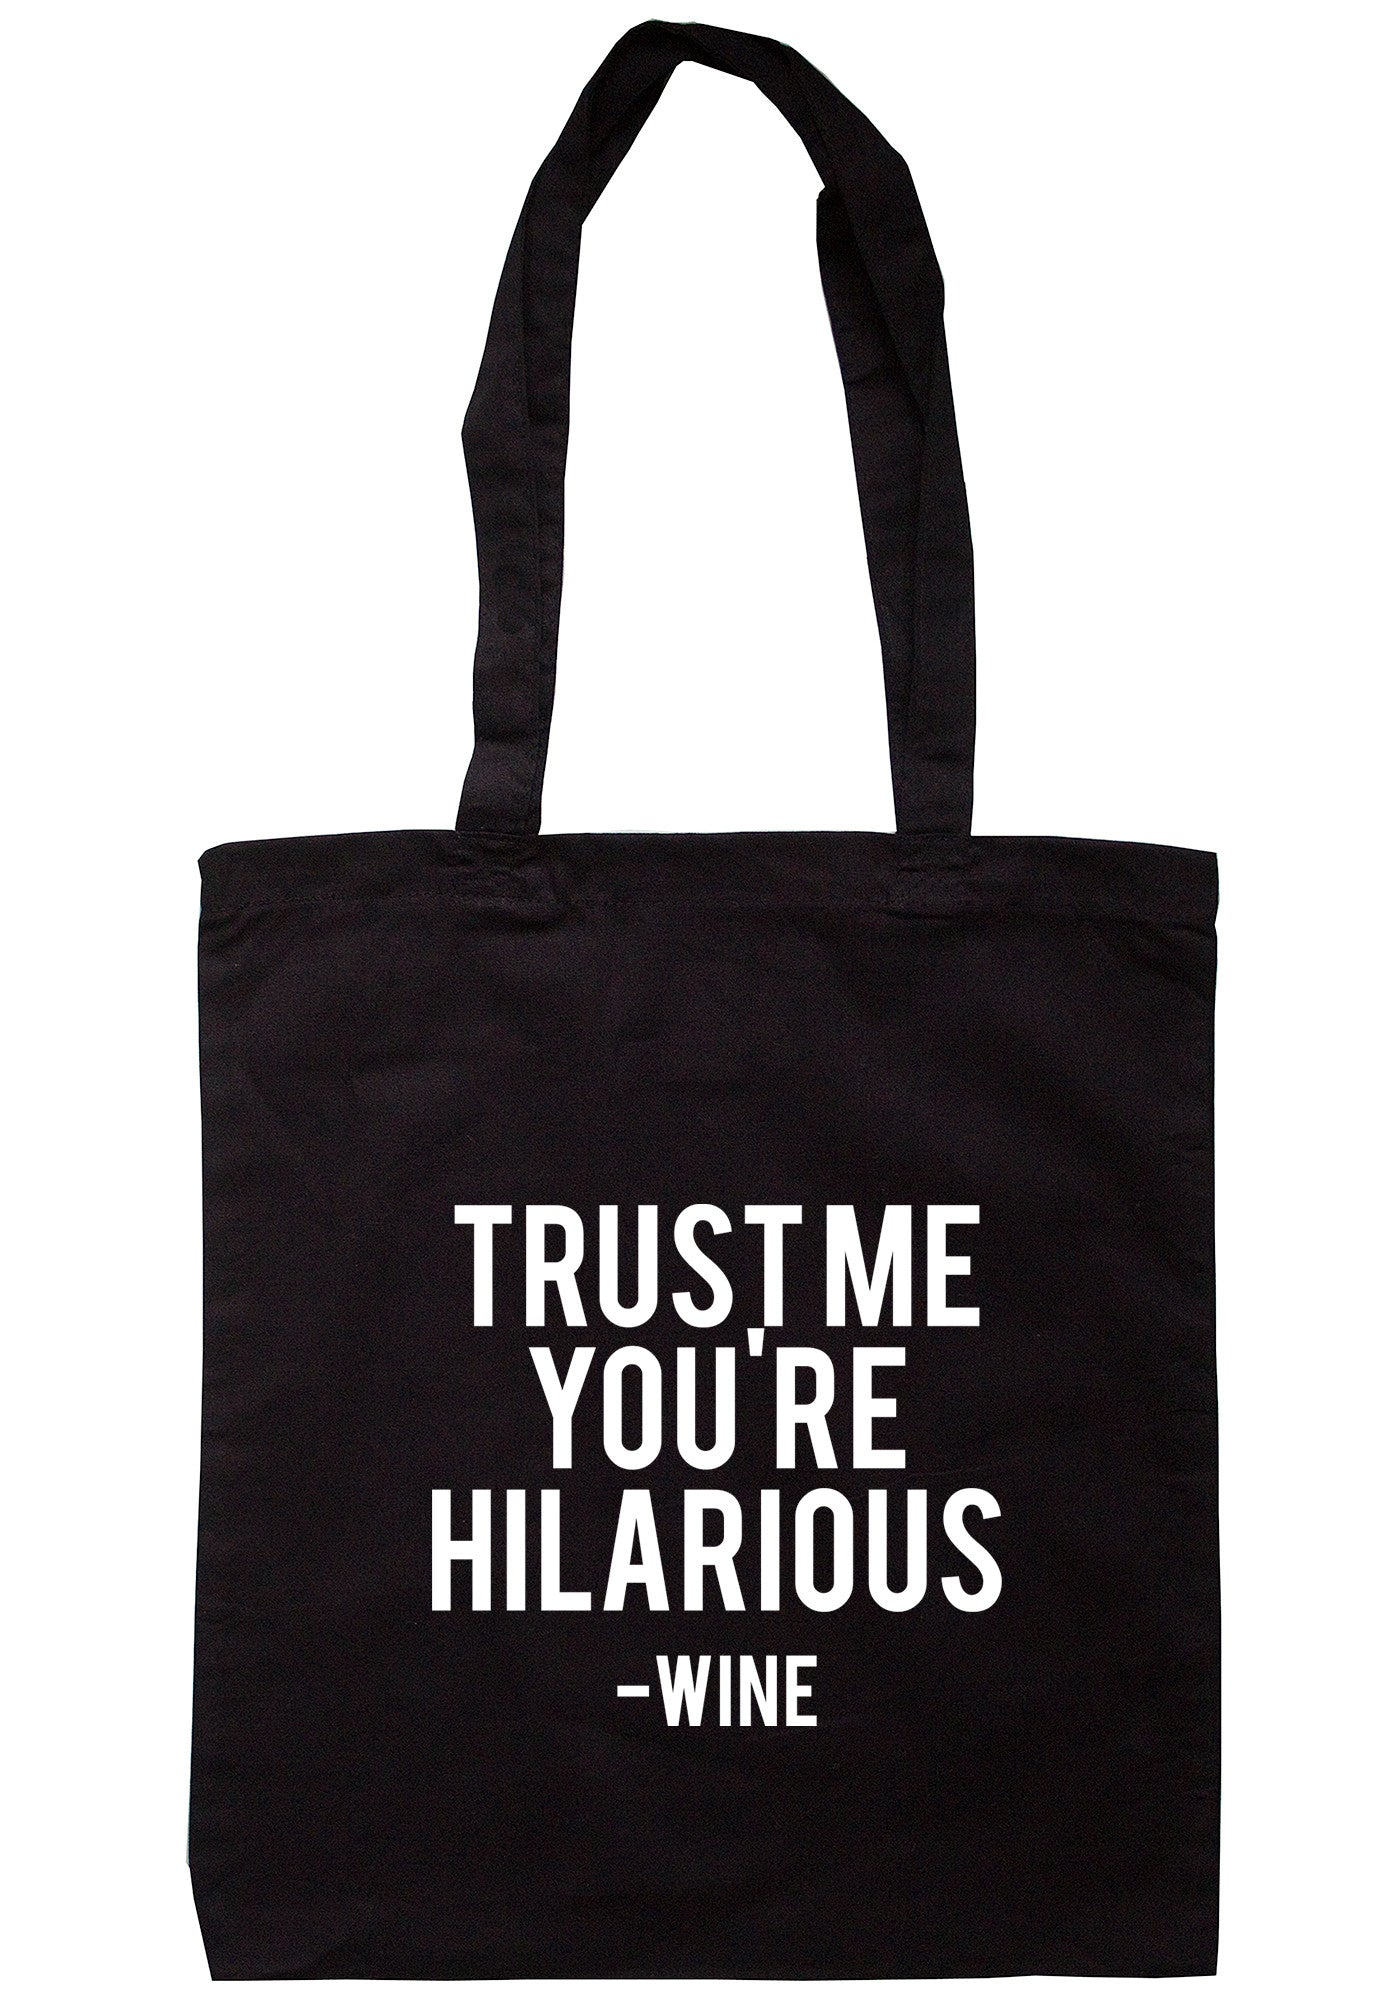 Trust Me You're Hilarious - Wine Tote Bag TB0402 - Illustrated Identity Ltd.